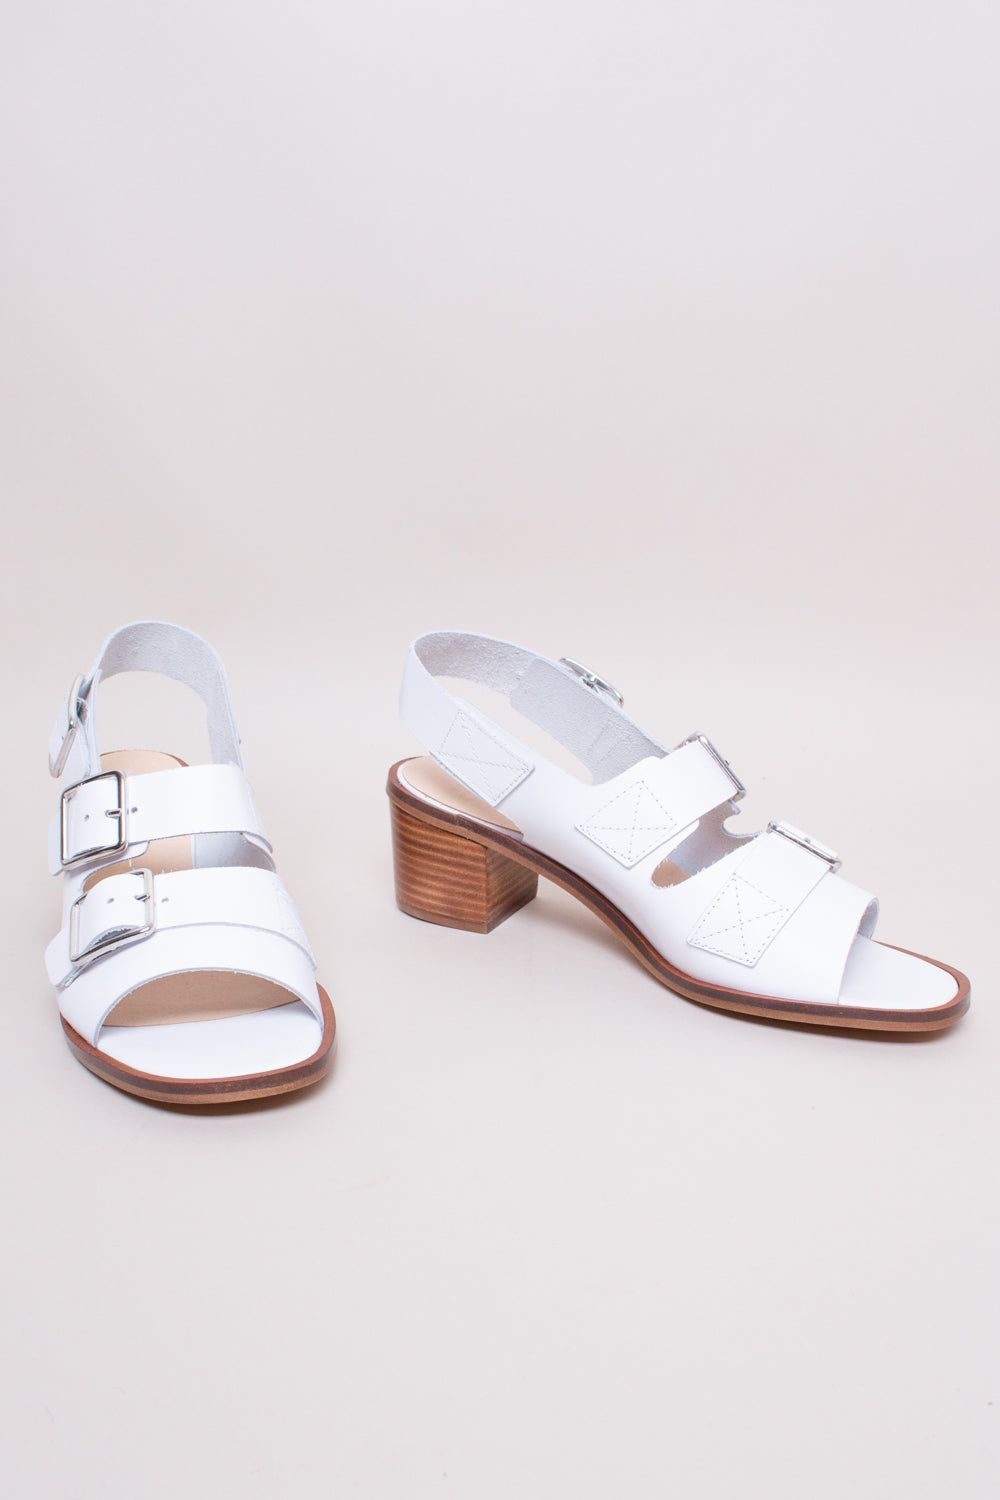 Intentionally Blank Jill Sandal in White - Vert & Vogue